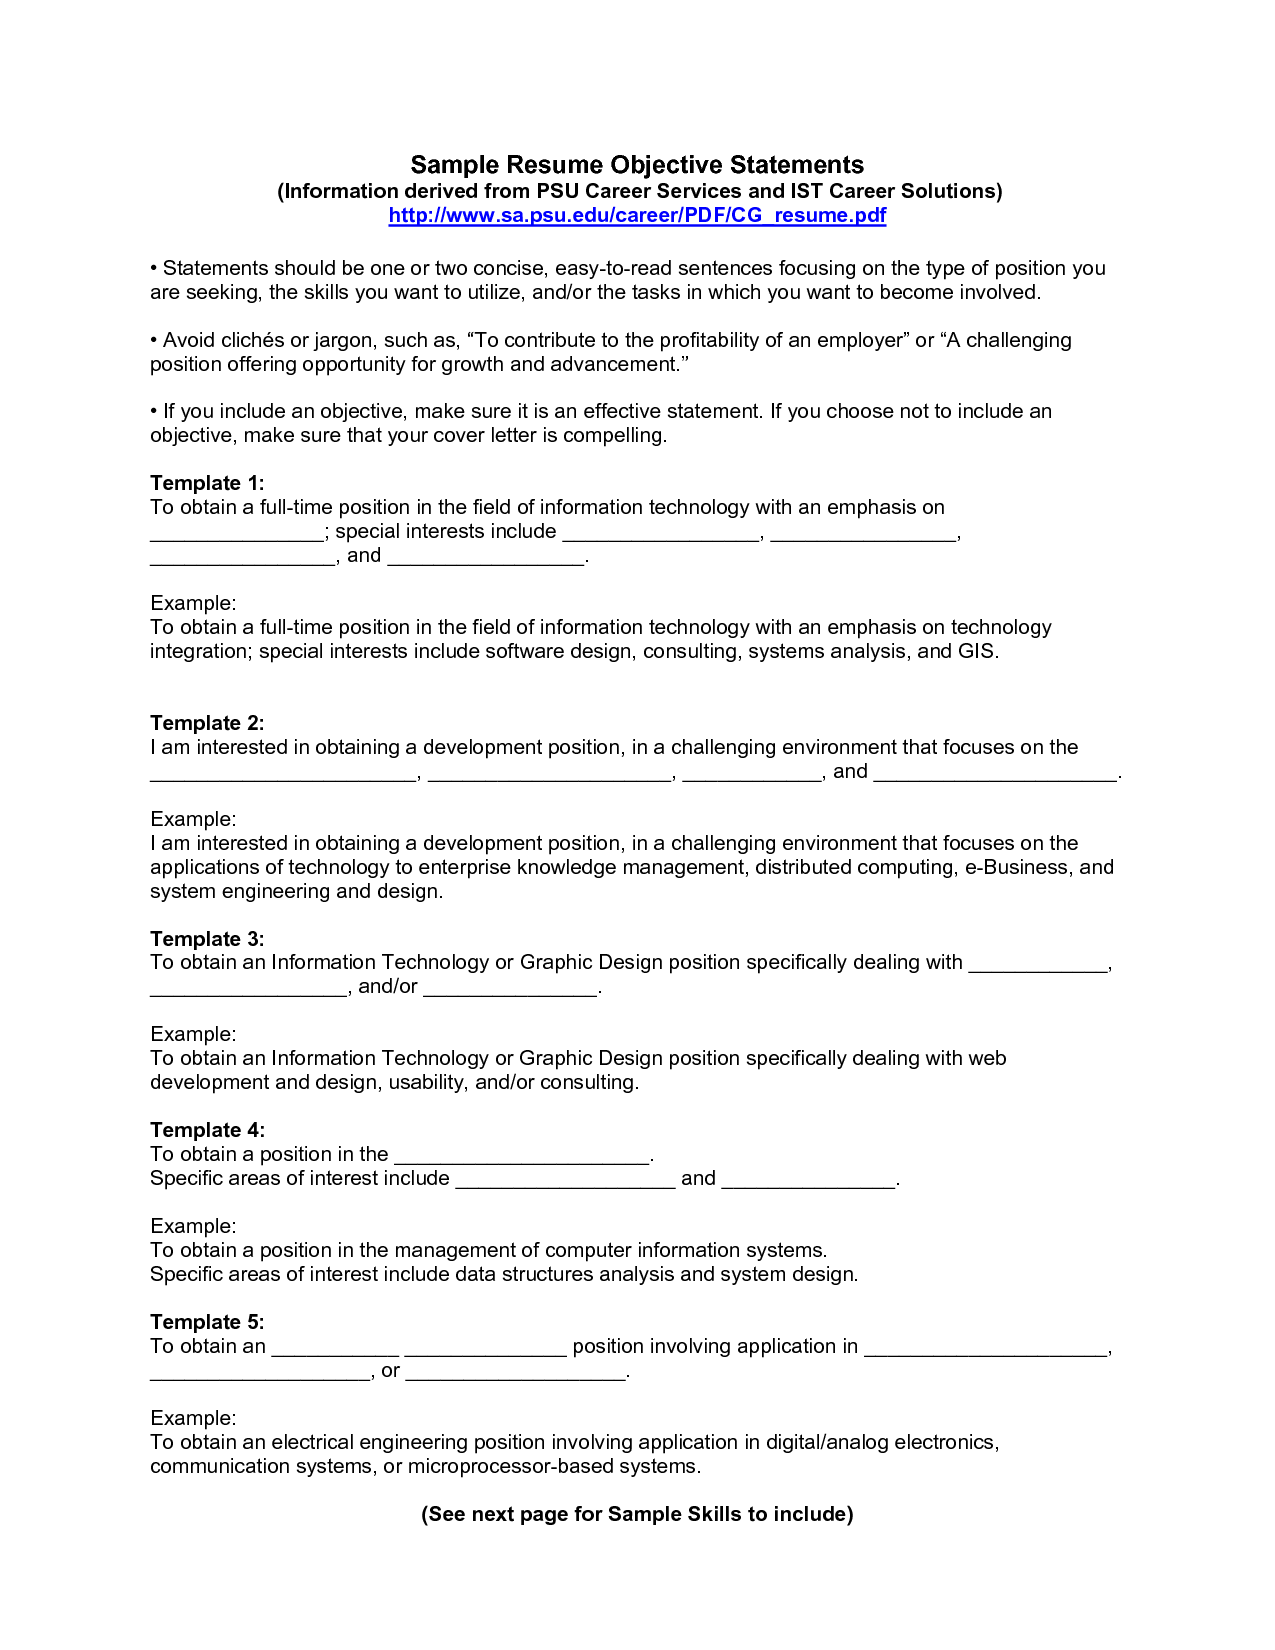 Samples Of Objective For Resume Glamorous Resume Objective Examplesprofessional Objective Resumes .